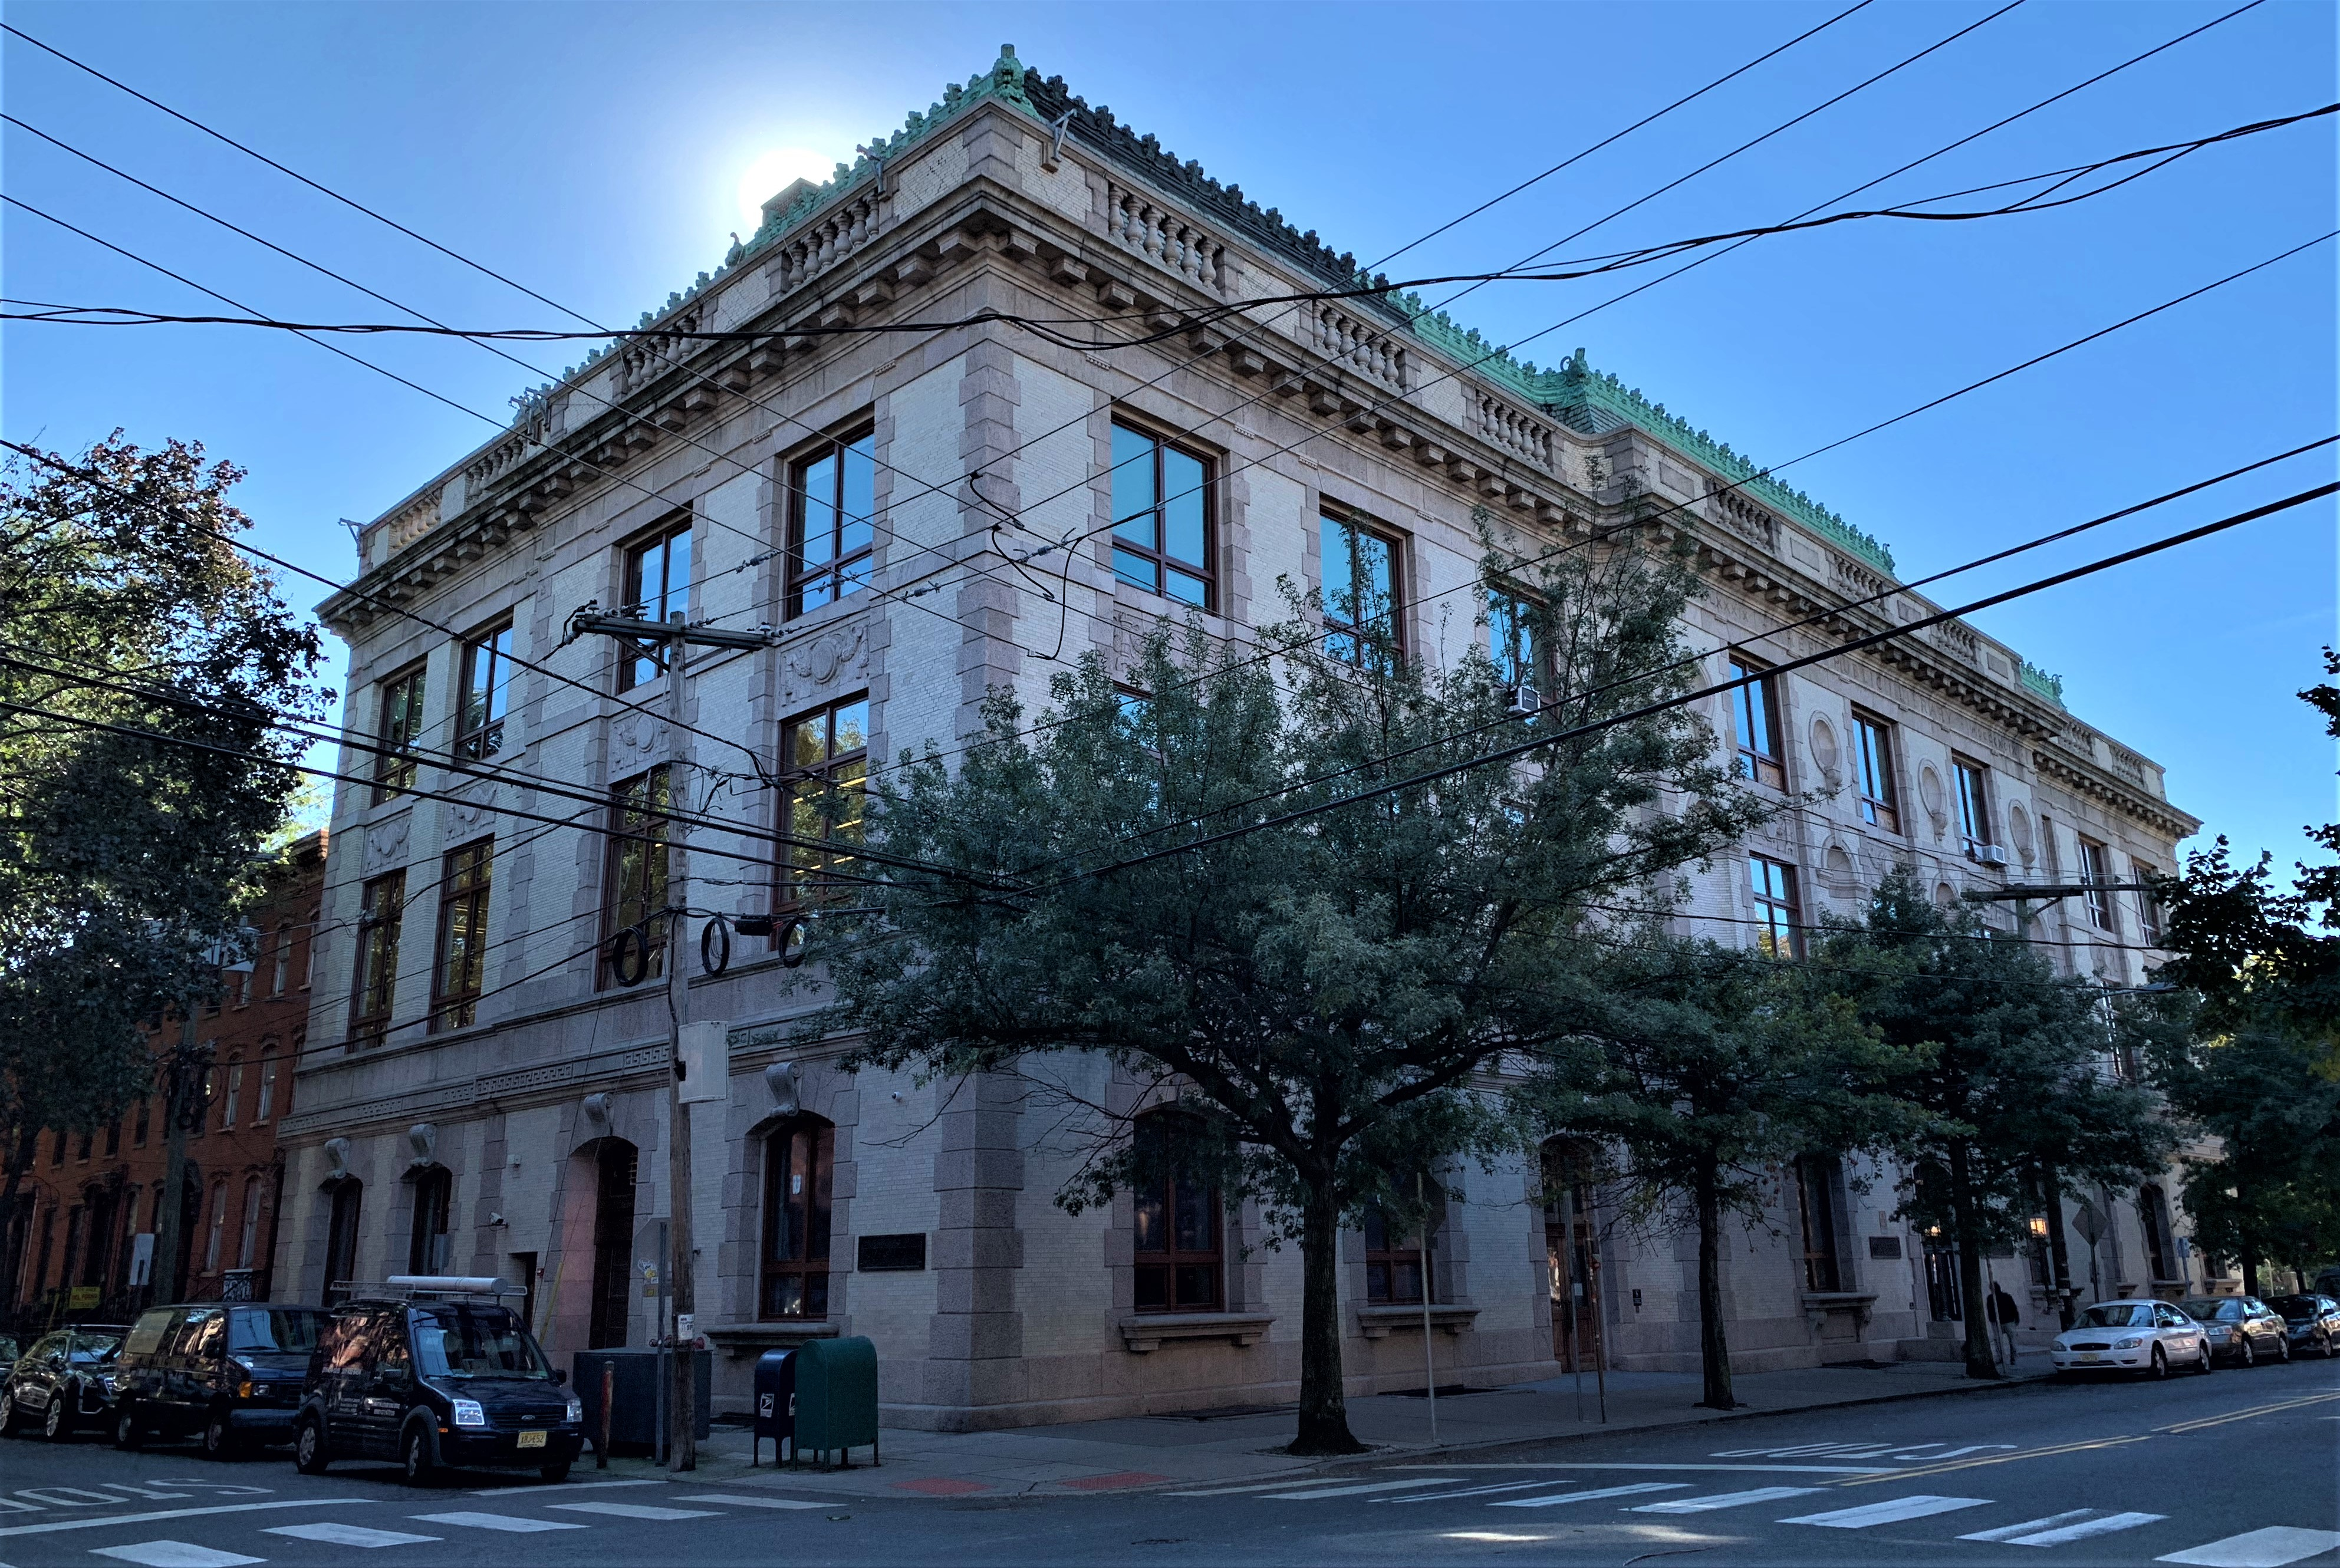 This is the Main Library on Jersey Ave. JCFPL has 9 other branch locations throughout the City!